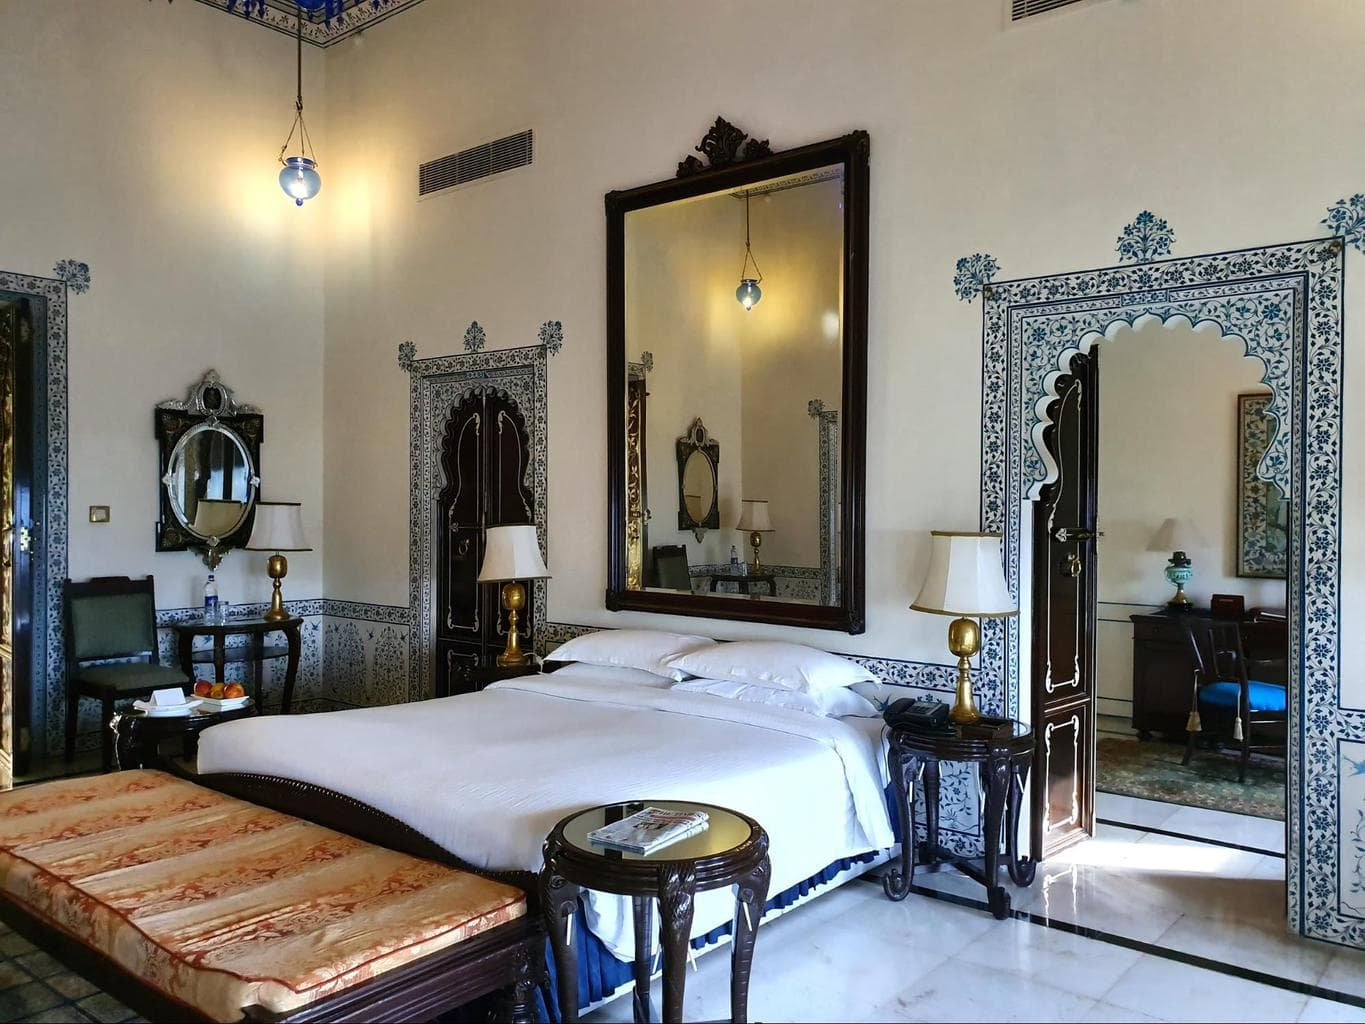 The Imperial Suite at Shiv Niwas Palace 02